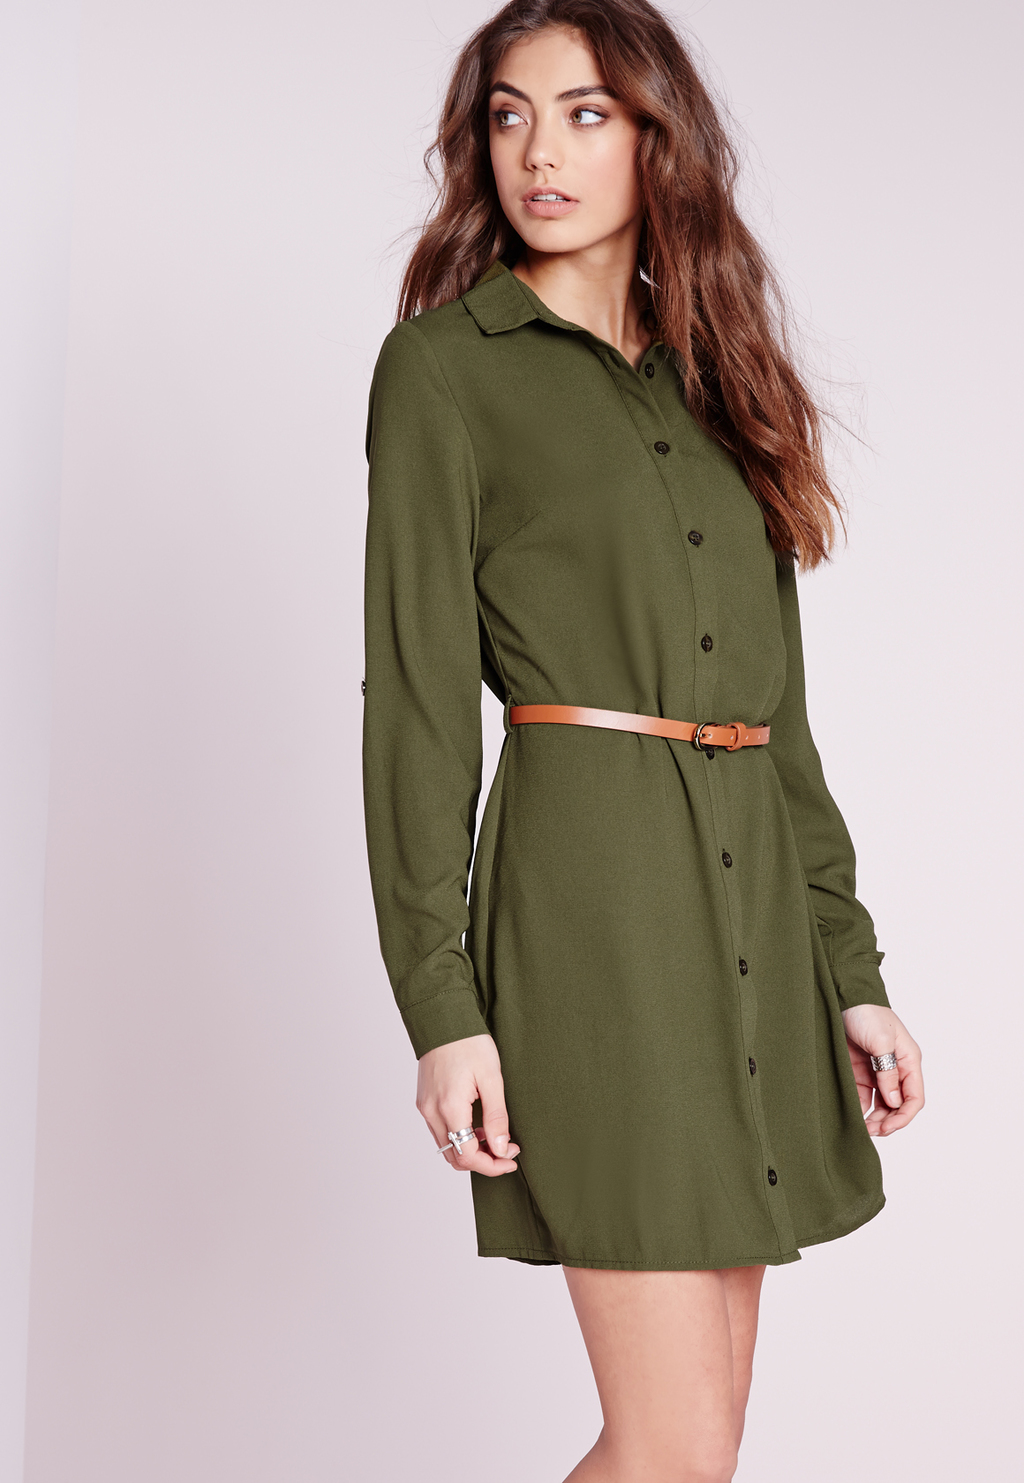 Long Sleeve Belted Shirt Dress Khaki, Beige - style: shirt; length: mid thigh; neckline: shirt collar/peter pan/zip with opening; pattern: plain; waist detail: belted waist/tie at waist/drawstring; predominant colour: khaki; occasions: casual; fit: body skimming; fibres: polyester/polyamide - 100%; sleeve length: long sleeve; sleeve style: standard; pattern type: fabric; texture group: other - light to midweight; season: s/s 2016; wardrobe: basic